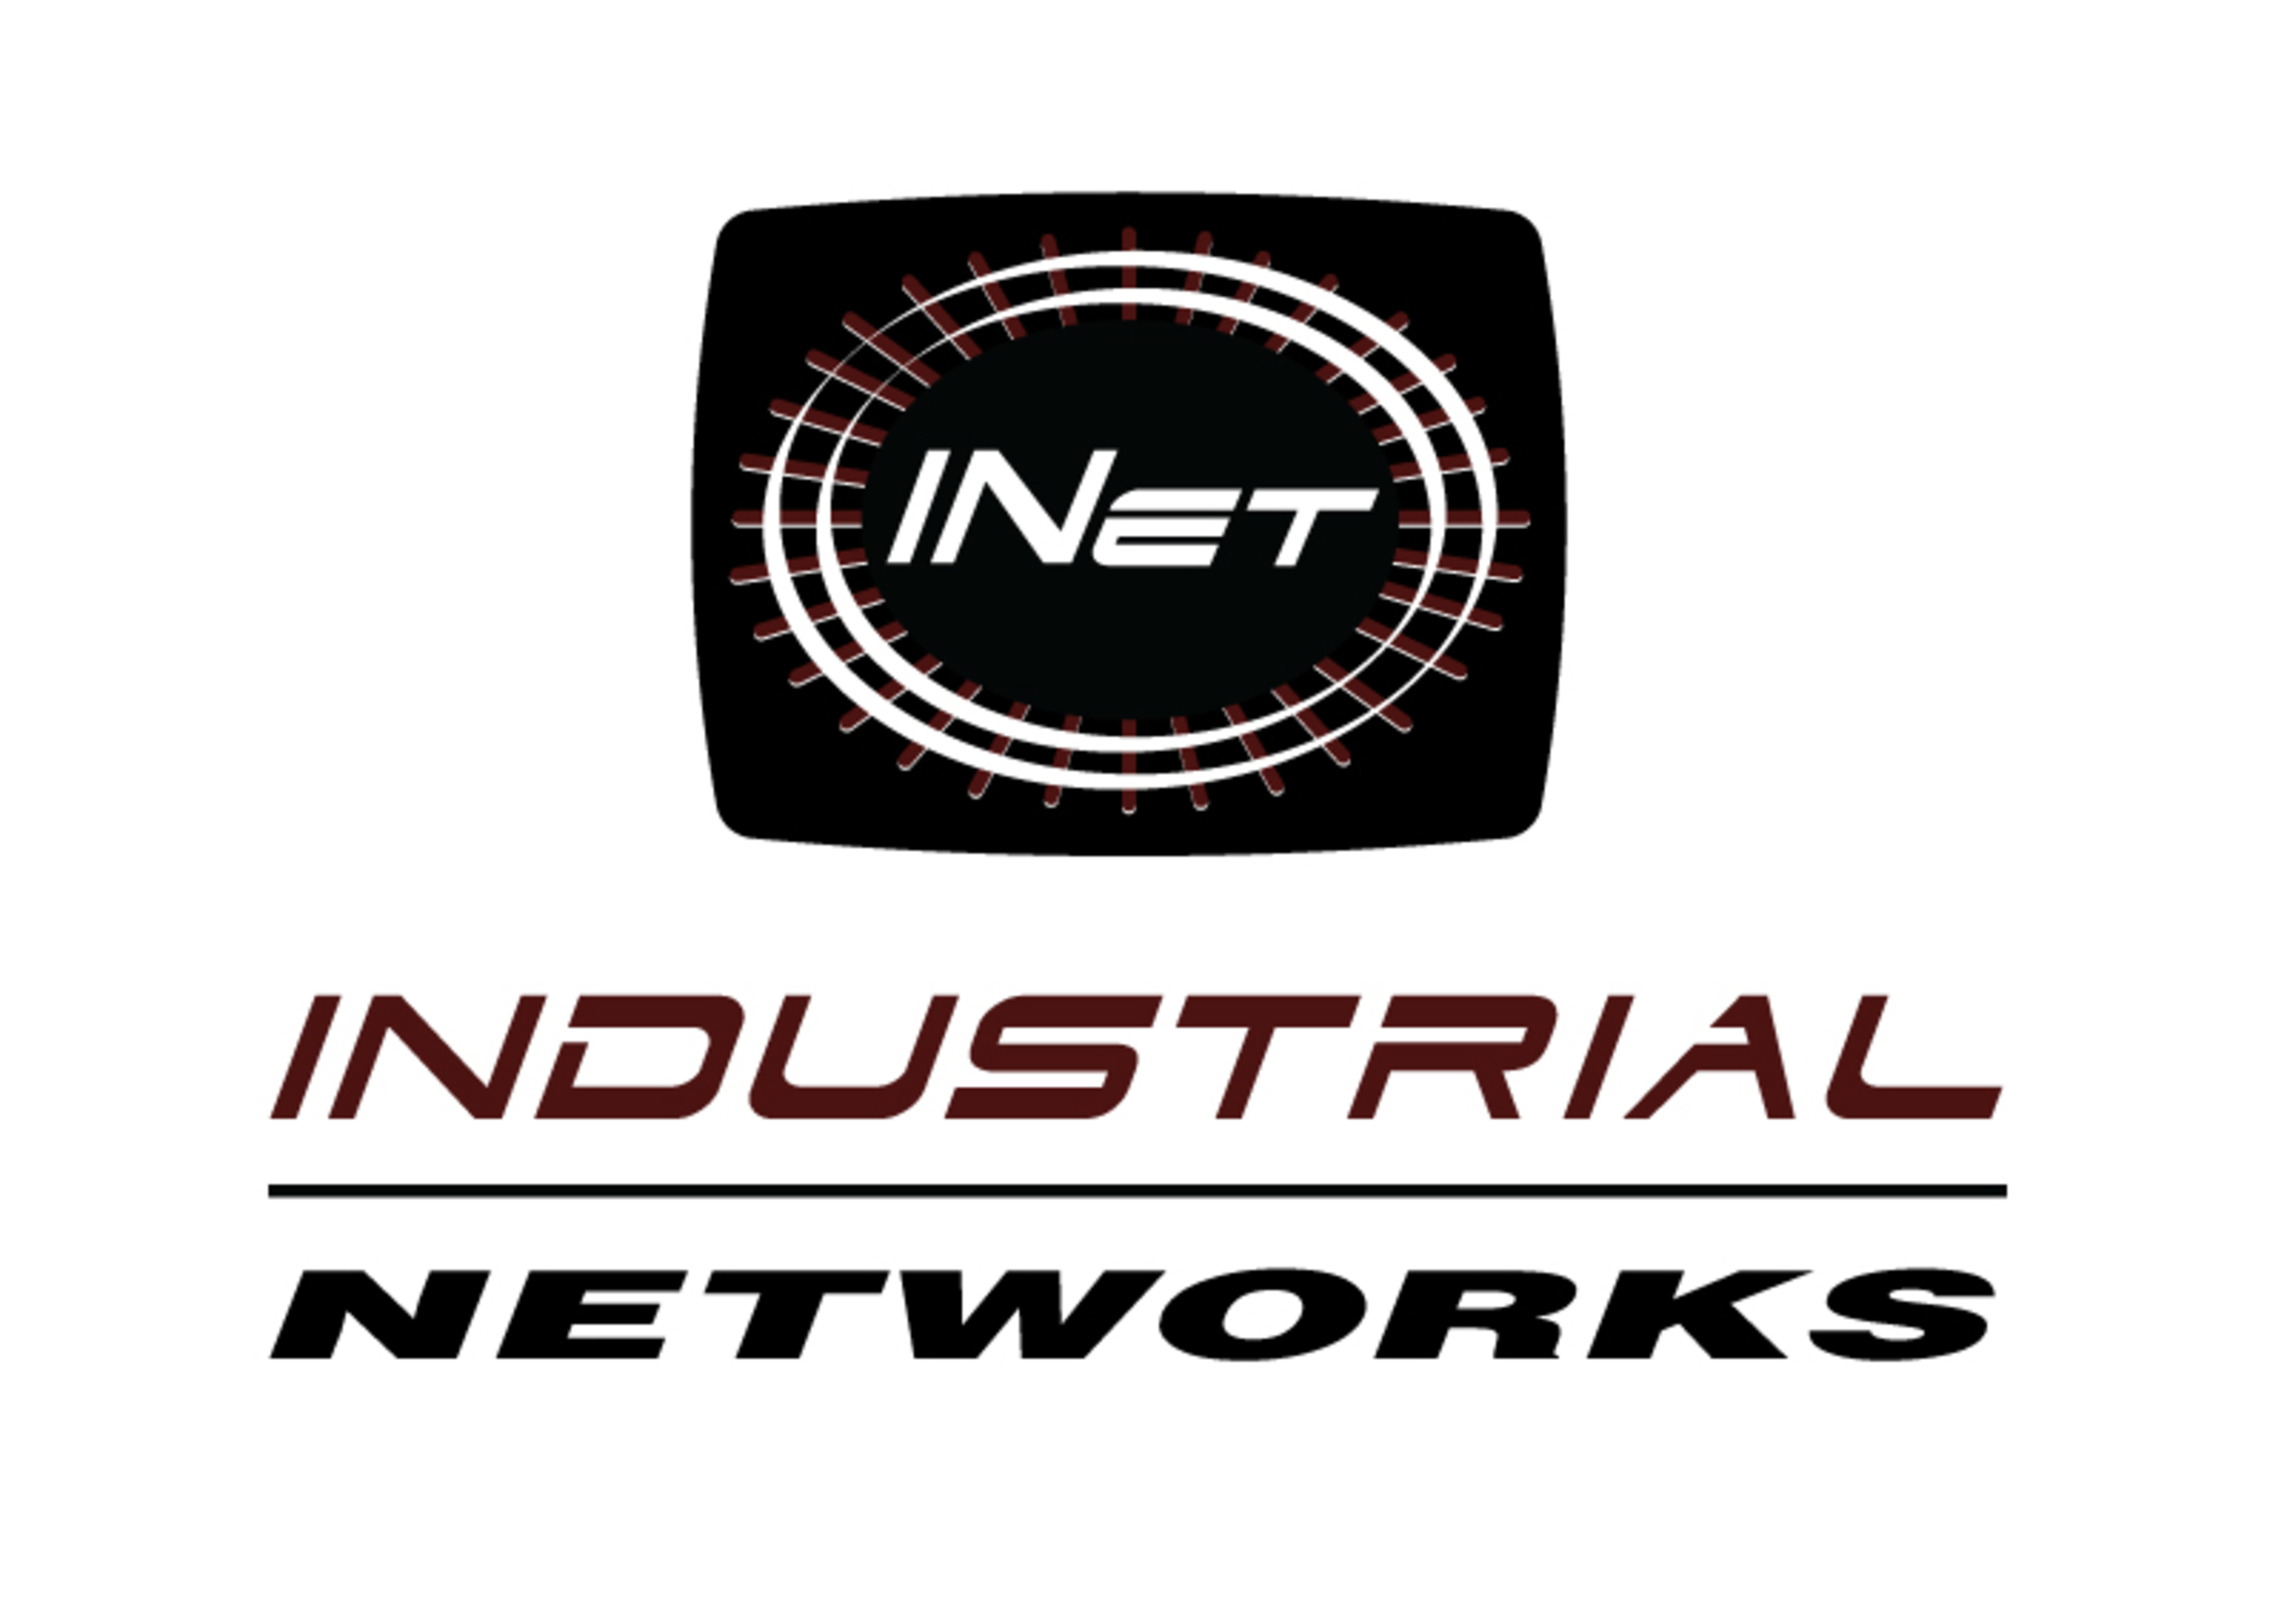 Industrial Networks is the leading provider of railyard automation and data acquisition systems for ...